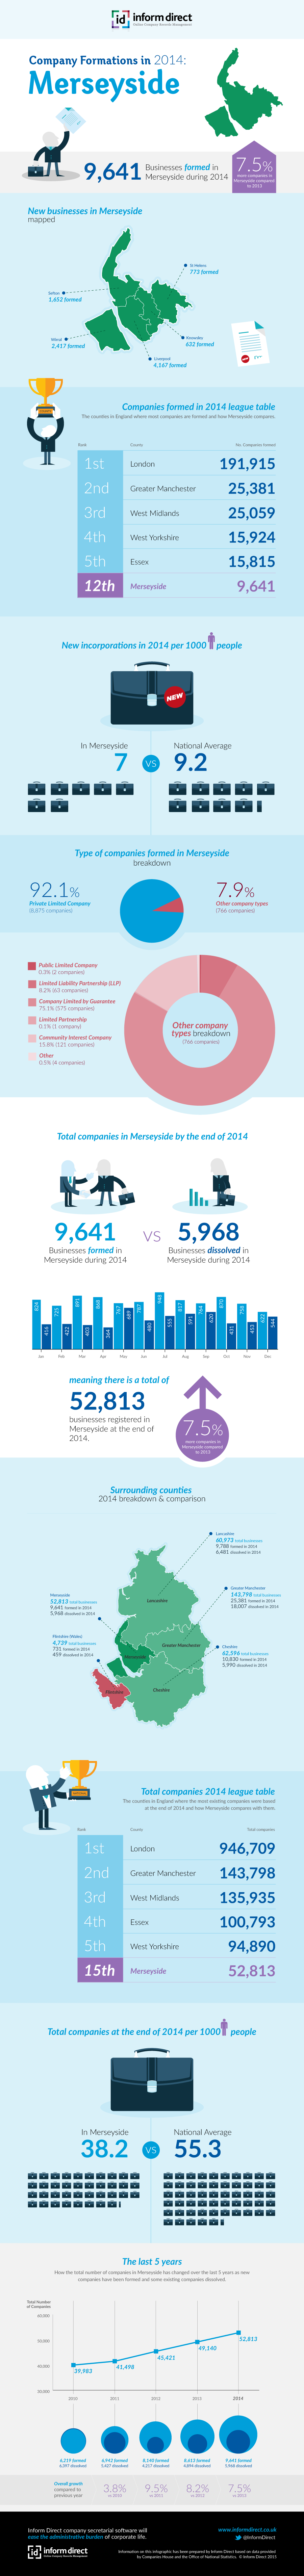 Inform Direct - Company Formations in Merseyside 2014 Infographic